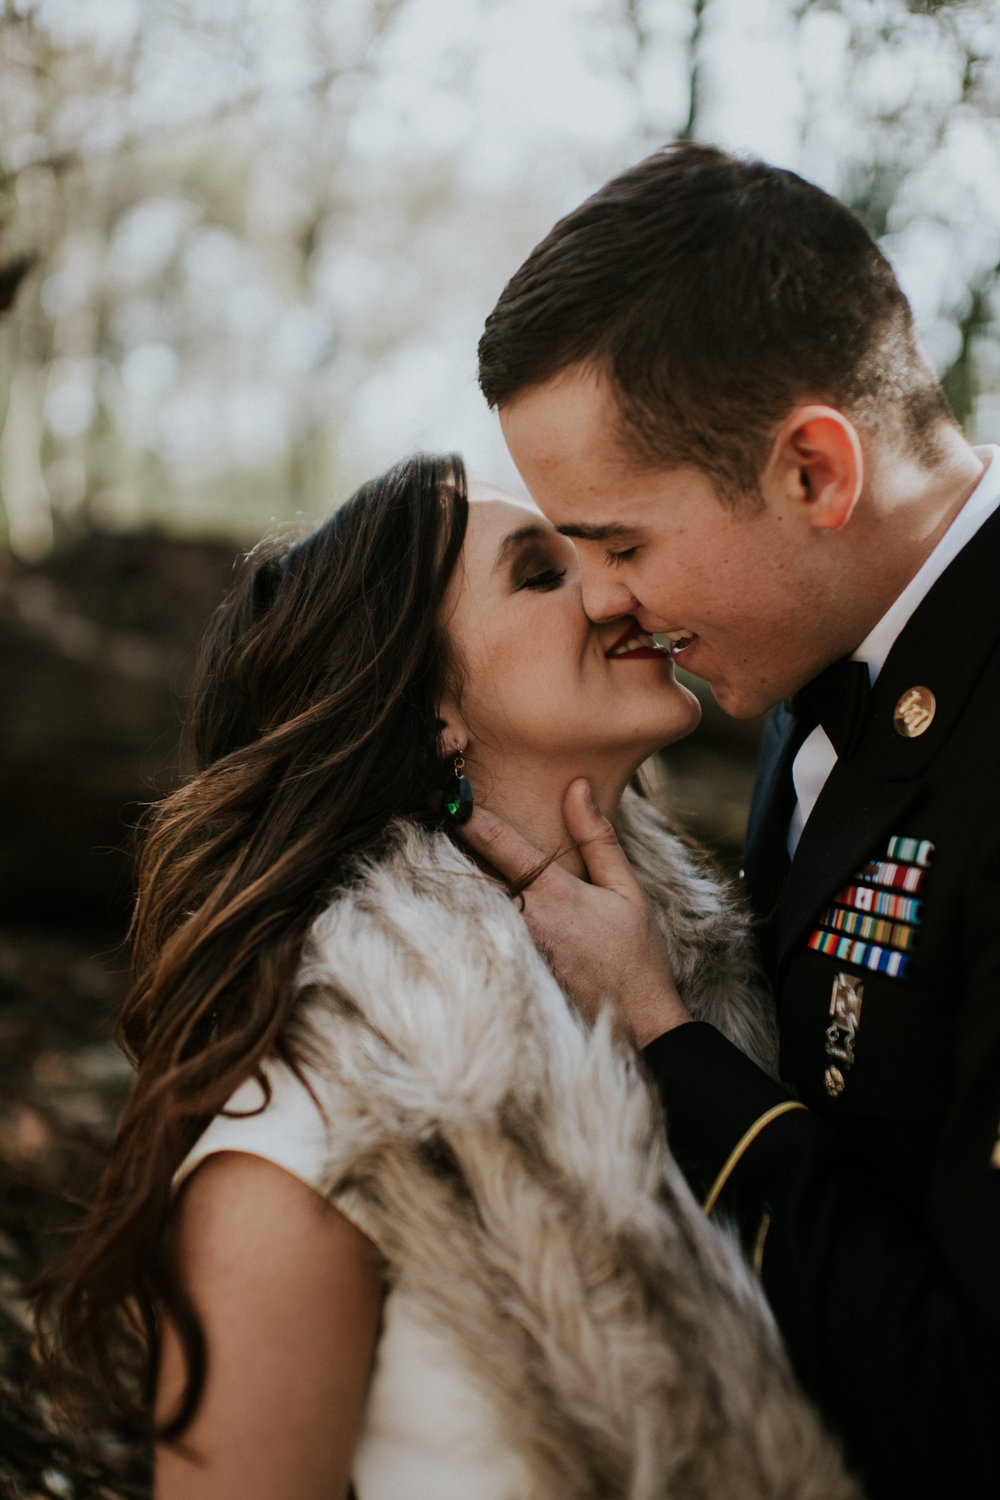 Landa Park Elopement | New Braunfels, Tx Elopement | Military Elopement | San Antonio Wedding